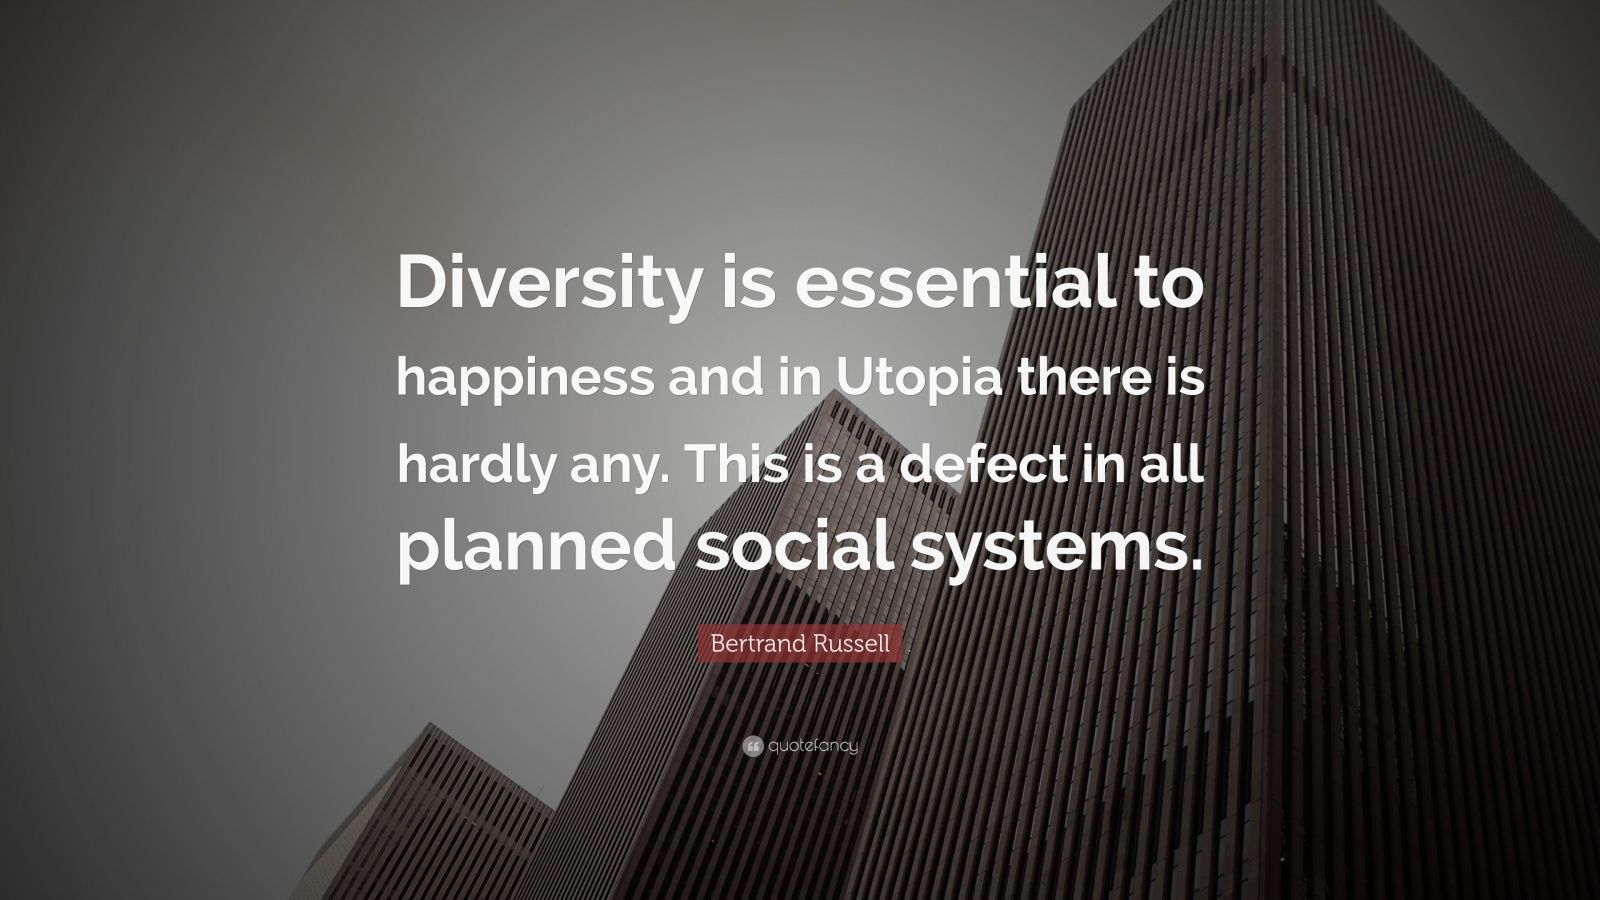 """Bertrand Russell Quote: """"Diversity is essential to happiness and in Utopia there is hardly any. This is a defect in all planned social systems."""""""